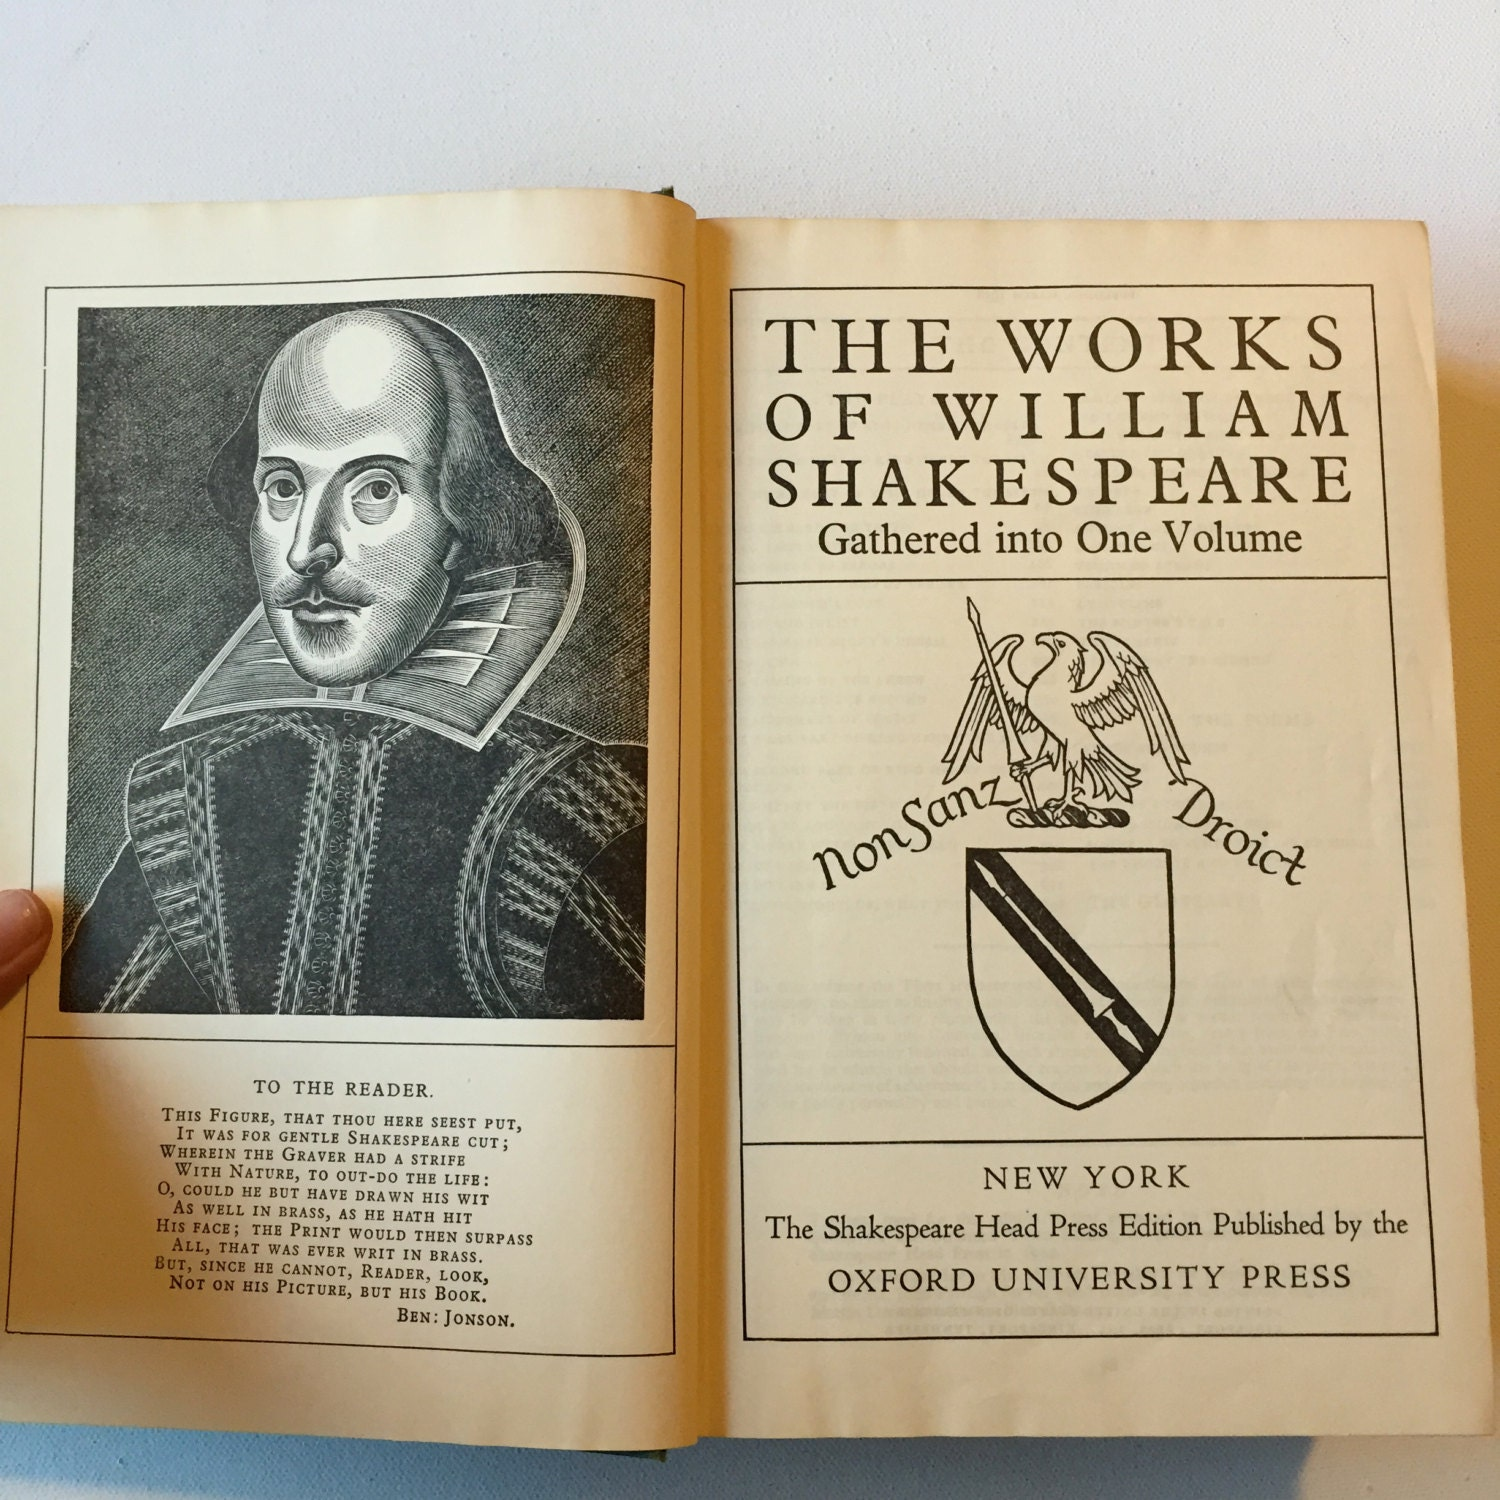 an analysis of the complete works of shakespeare About william shakespeare complete works from the world famous royal shakespeare company, the first authoritative, modernized, and corrected edition of shakespeare's first folio in three centuries.